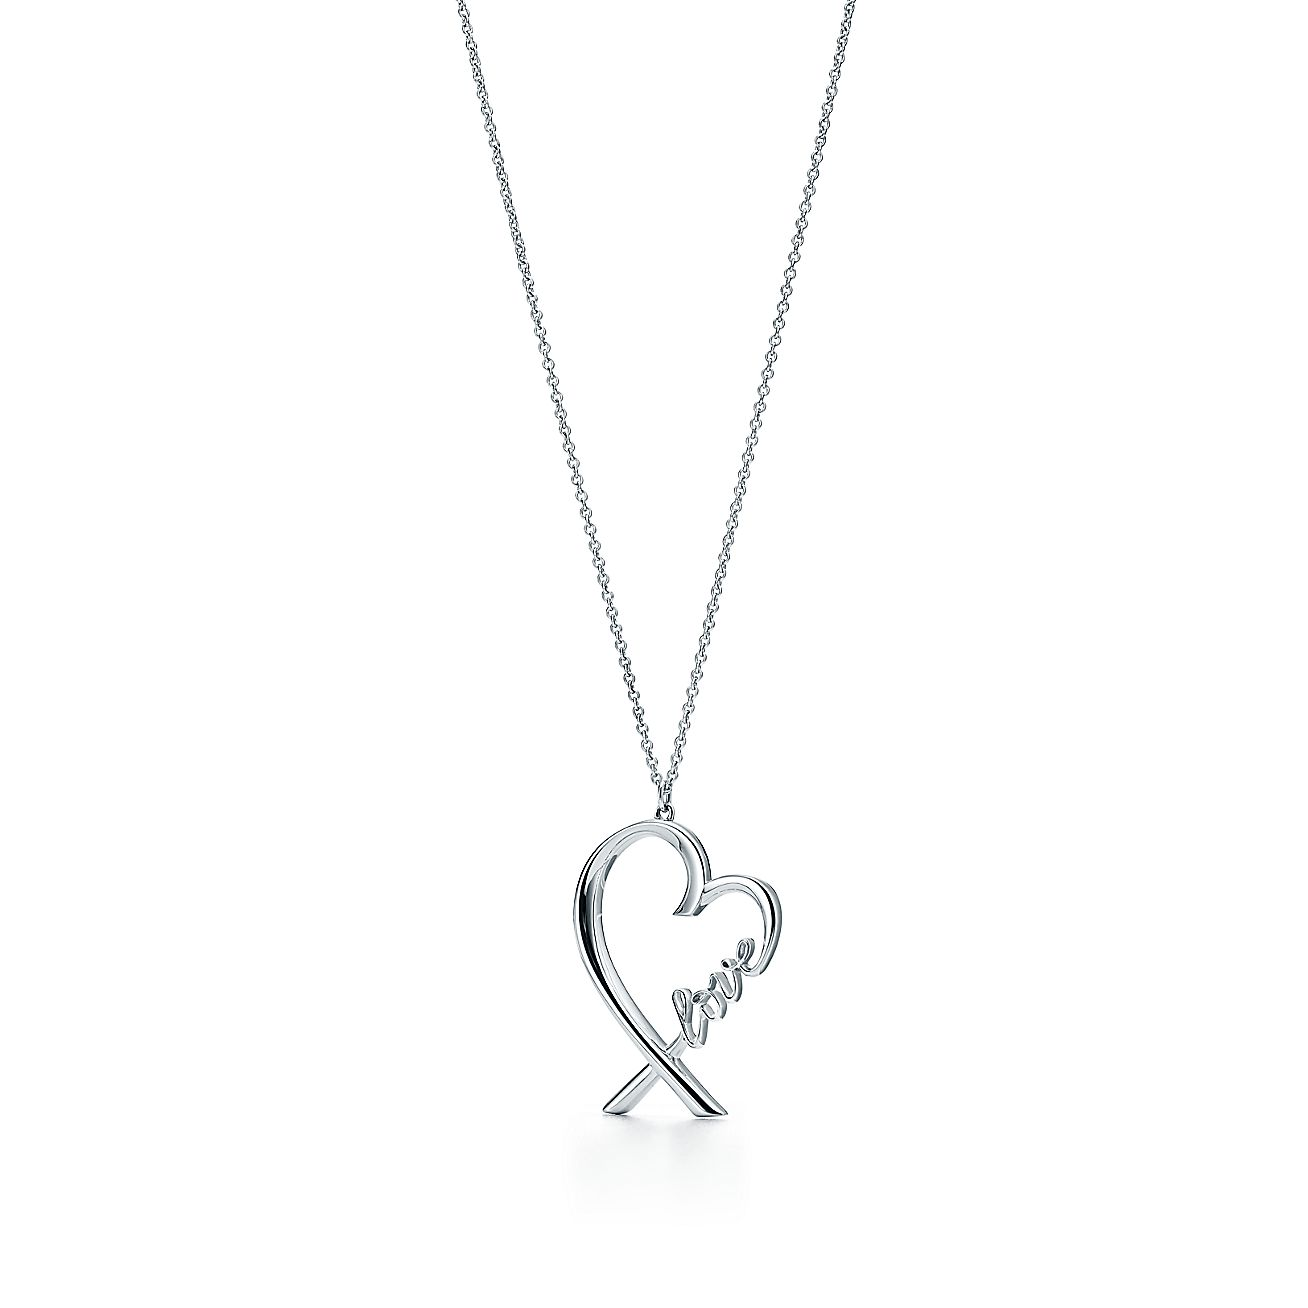 Paloma picasso loving heart love pendant in sterling silver paloma picasso loving heart love pendant in sterling silver tiffany co aloadofball